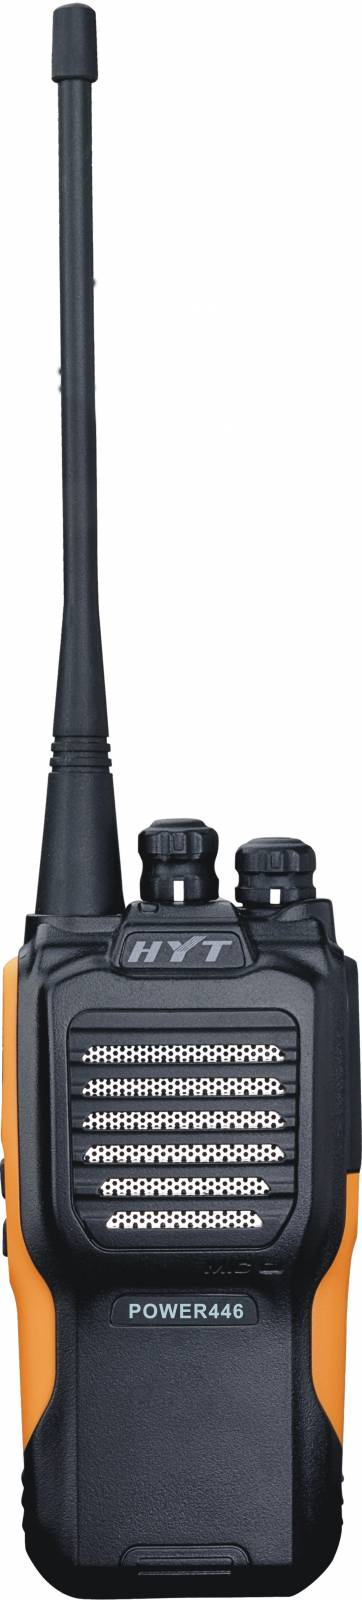 HYTERA POWER446 LICENCE FREE PORTABLE